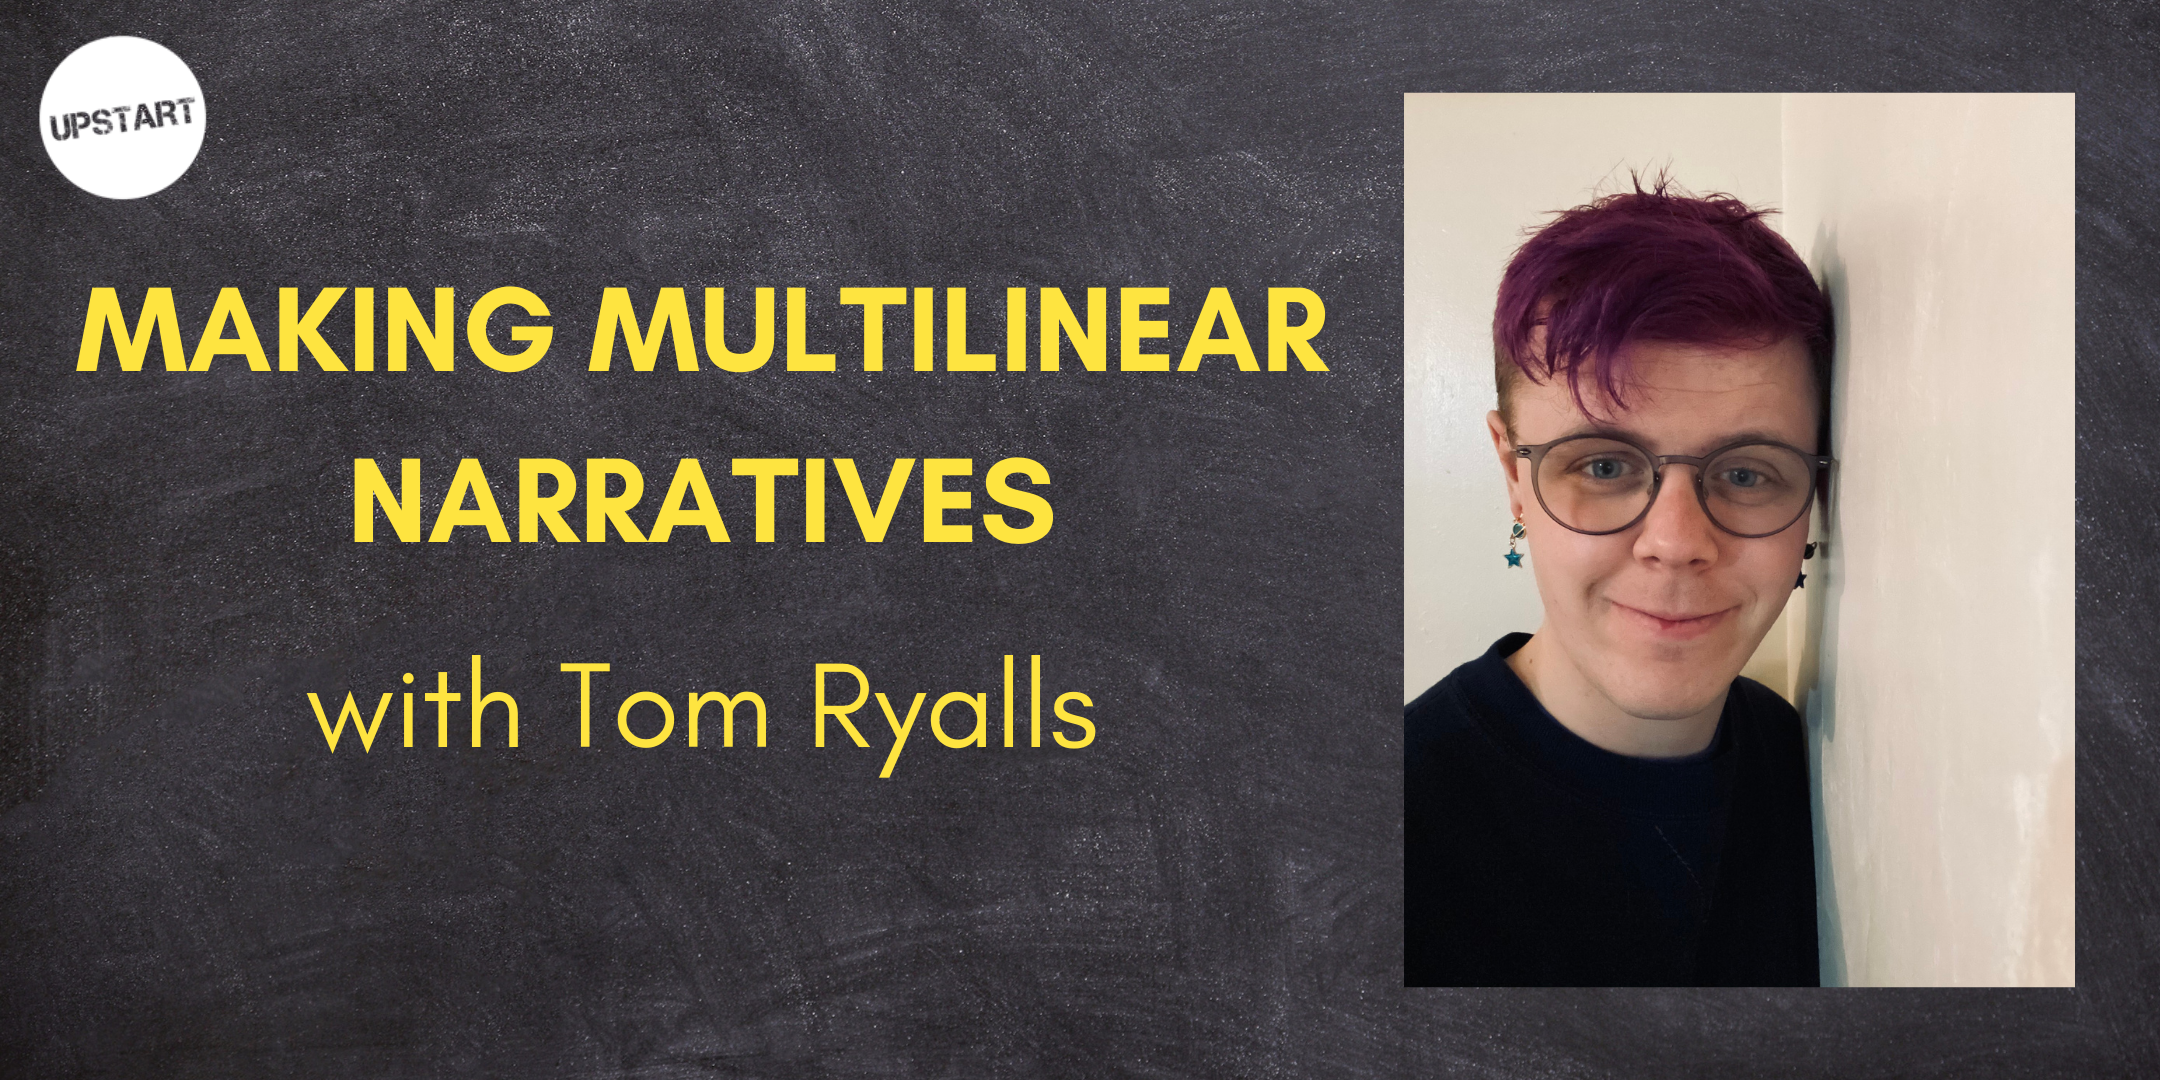 A picture of Tom Ryalls with the title of the workshop: Making Multilinear Narratives